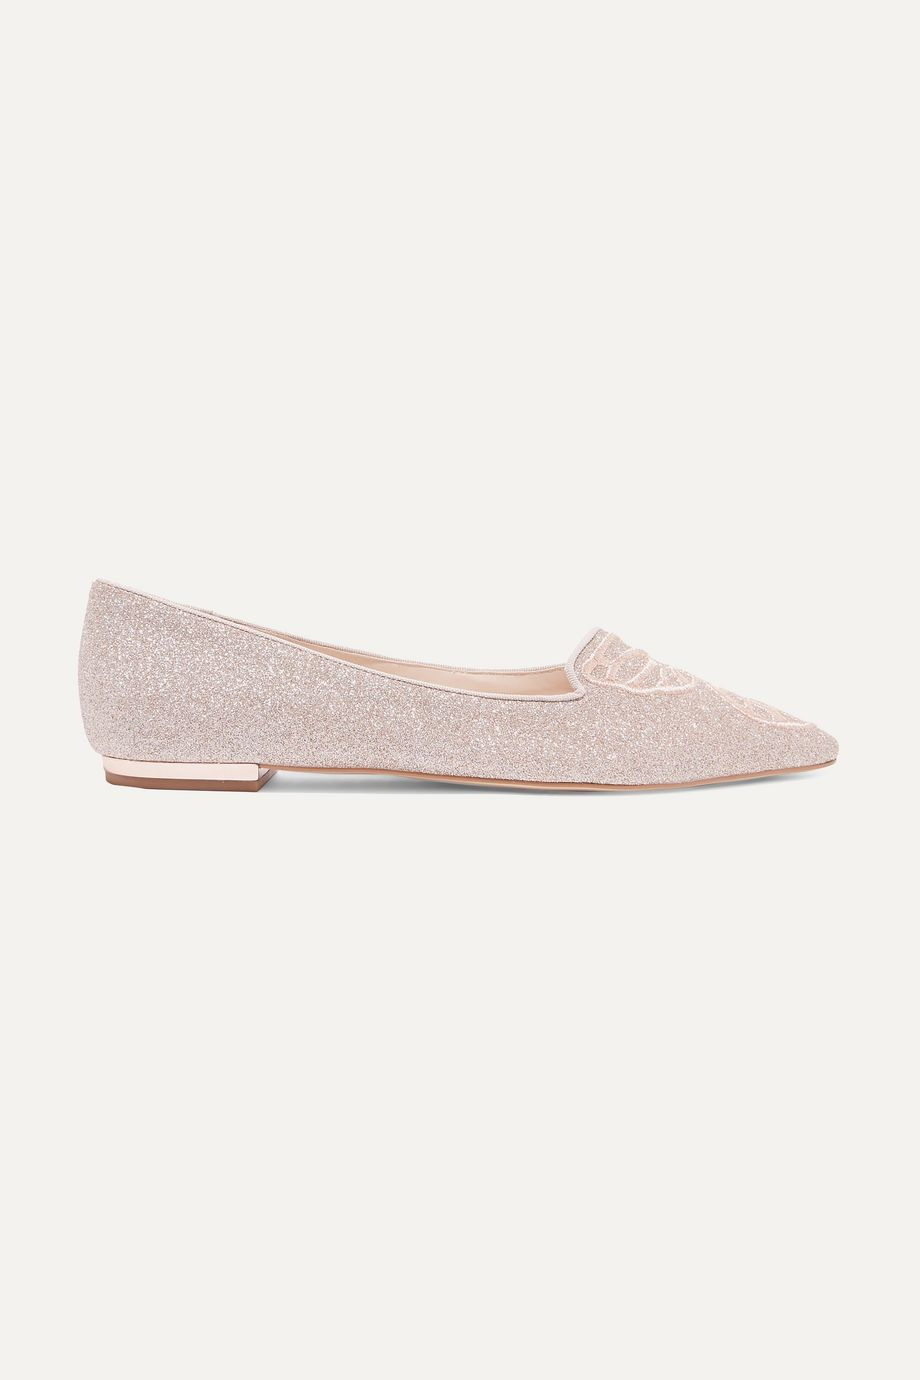 Sophia Webster Butterfly embroidered glittered leather point-toe flats